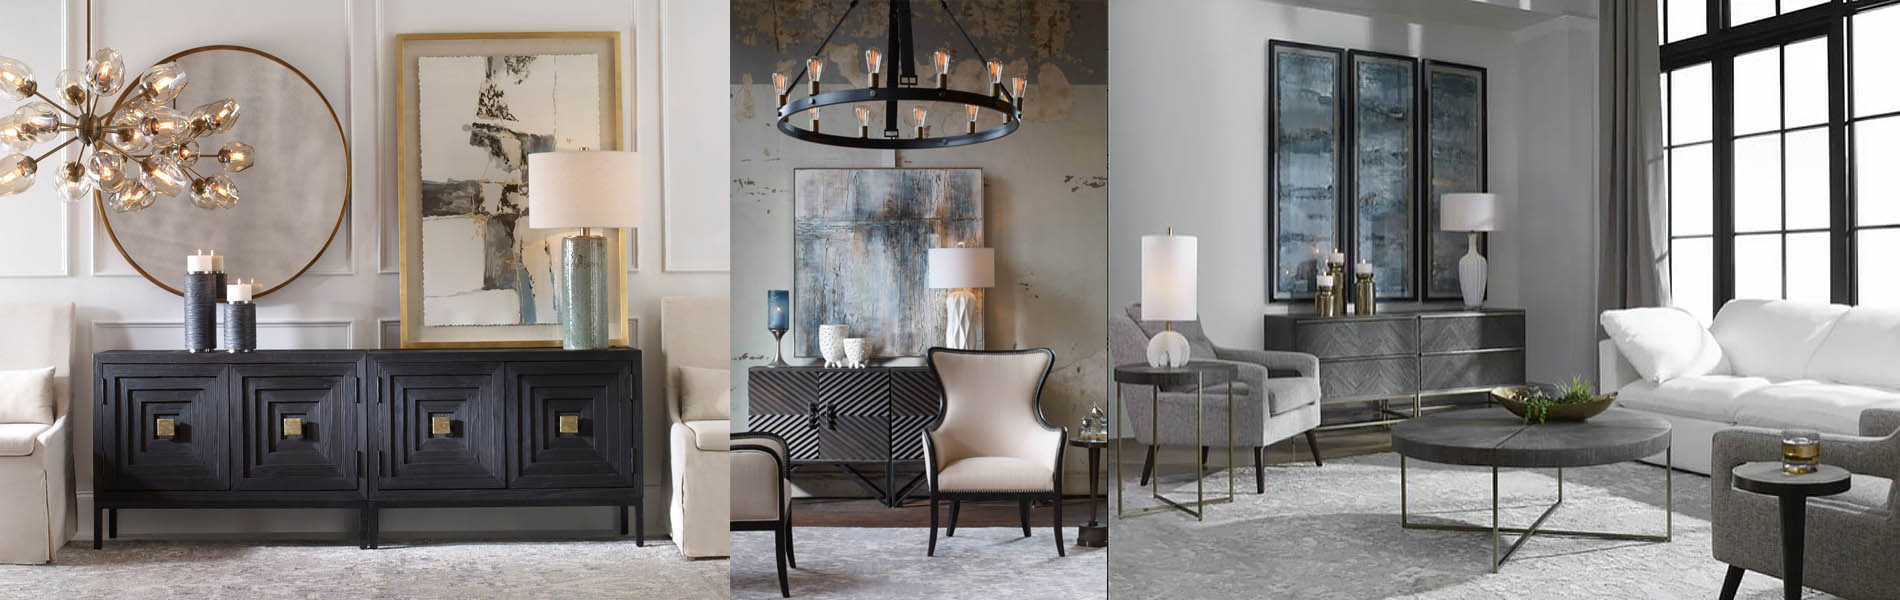 Maison Living French Provincial Furniture Hamptons Furniture English European Designs Mirrors Homewares Linen Lighting